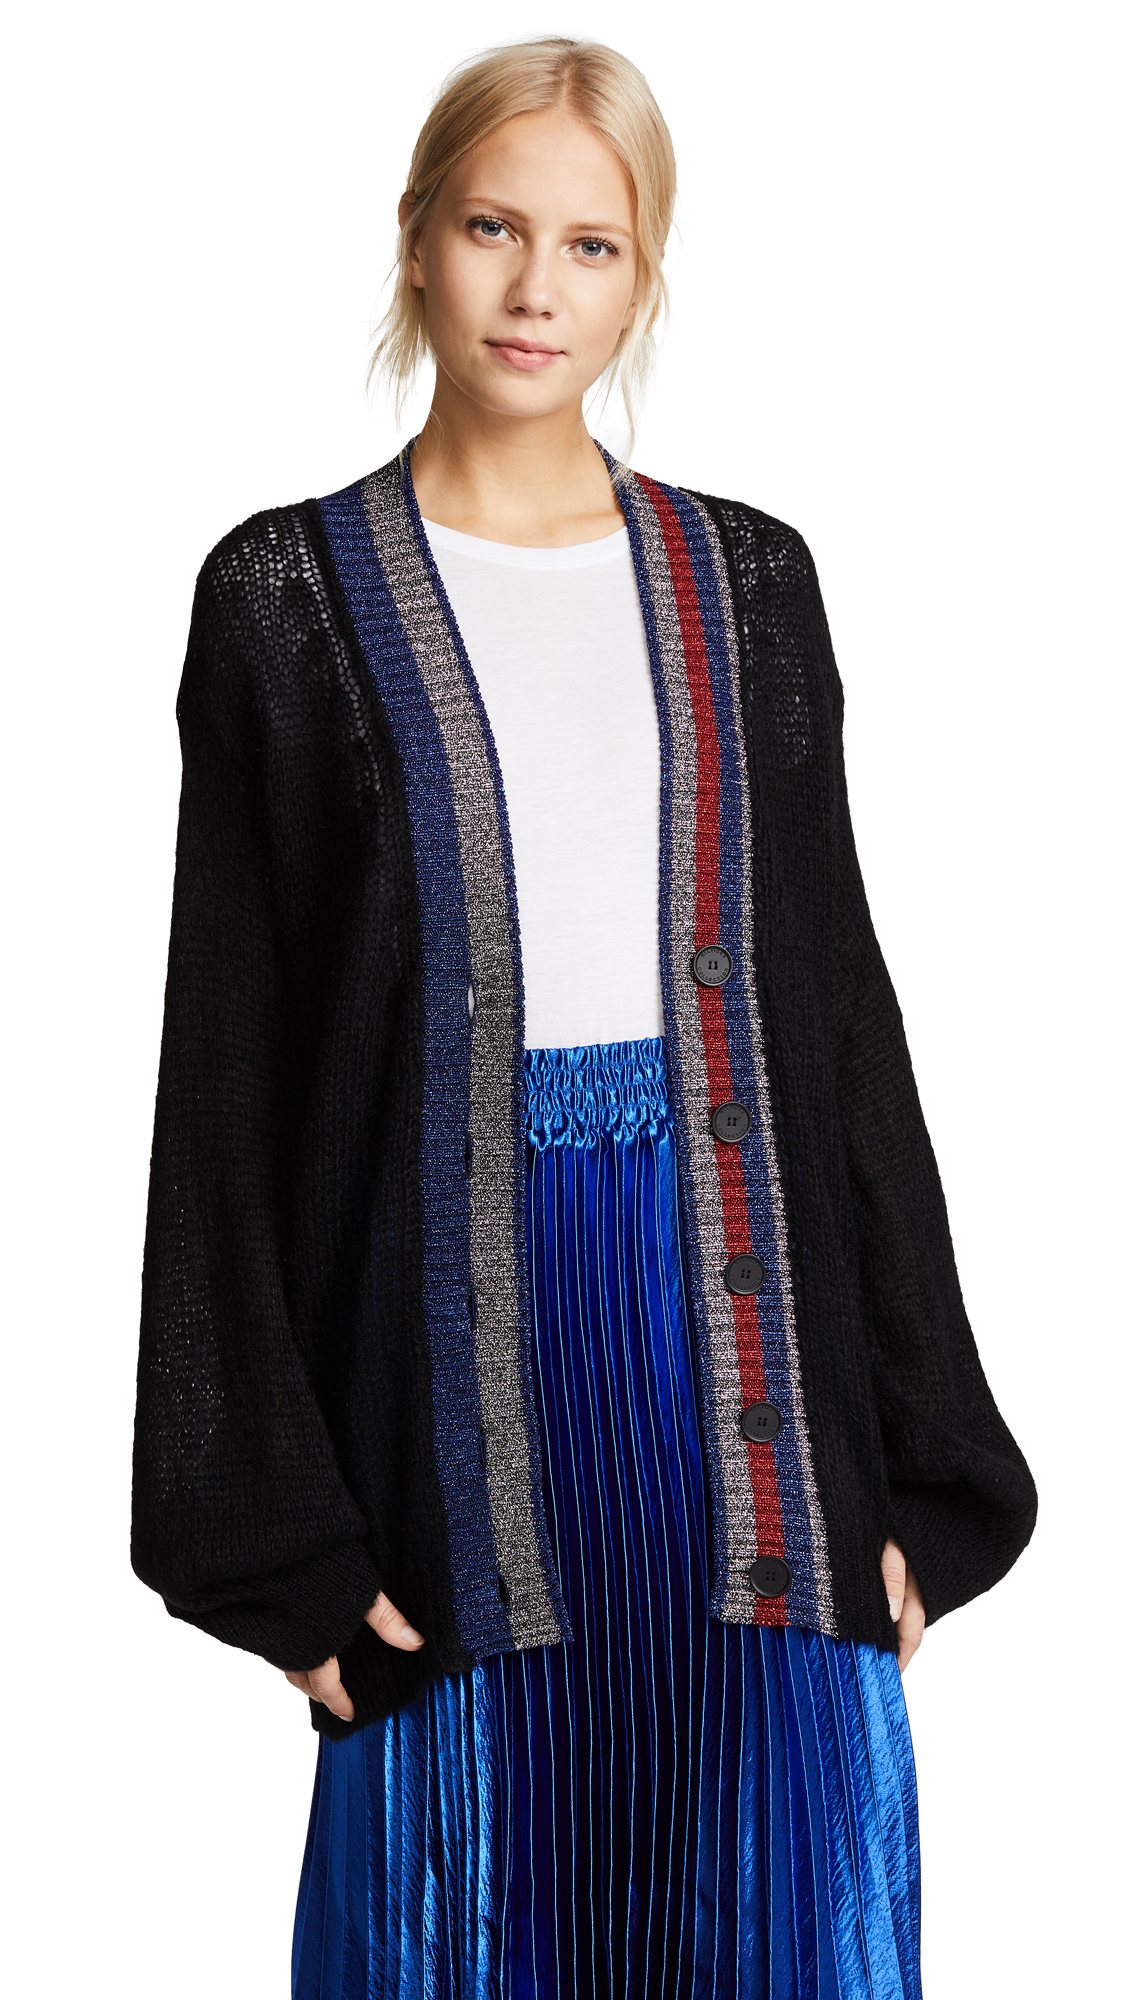 Hilfiger Collection Mohair & Metallic Cardigan - Meteorite